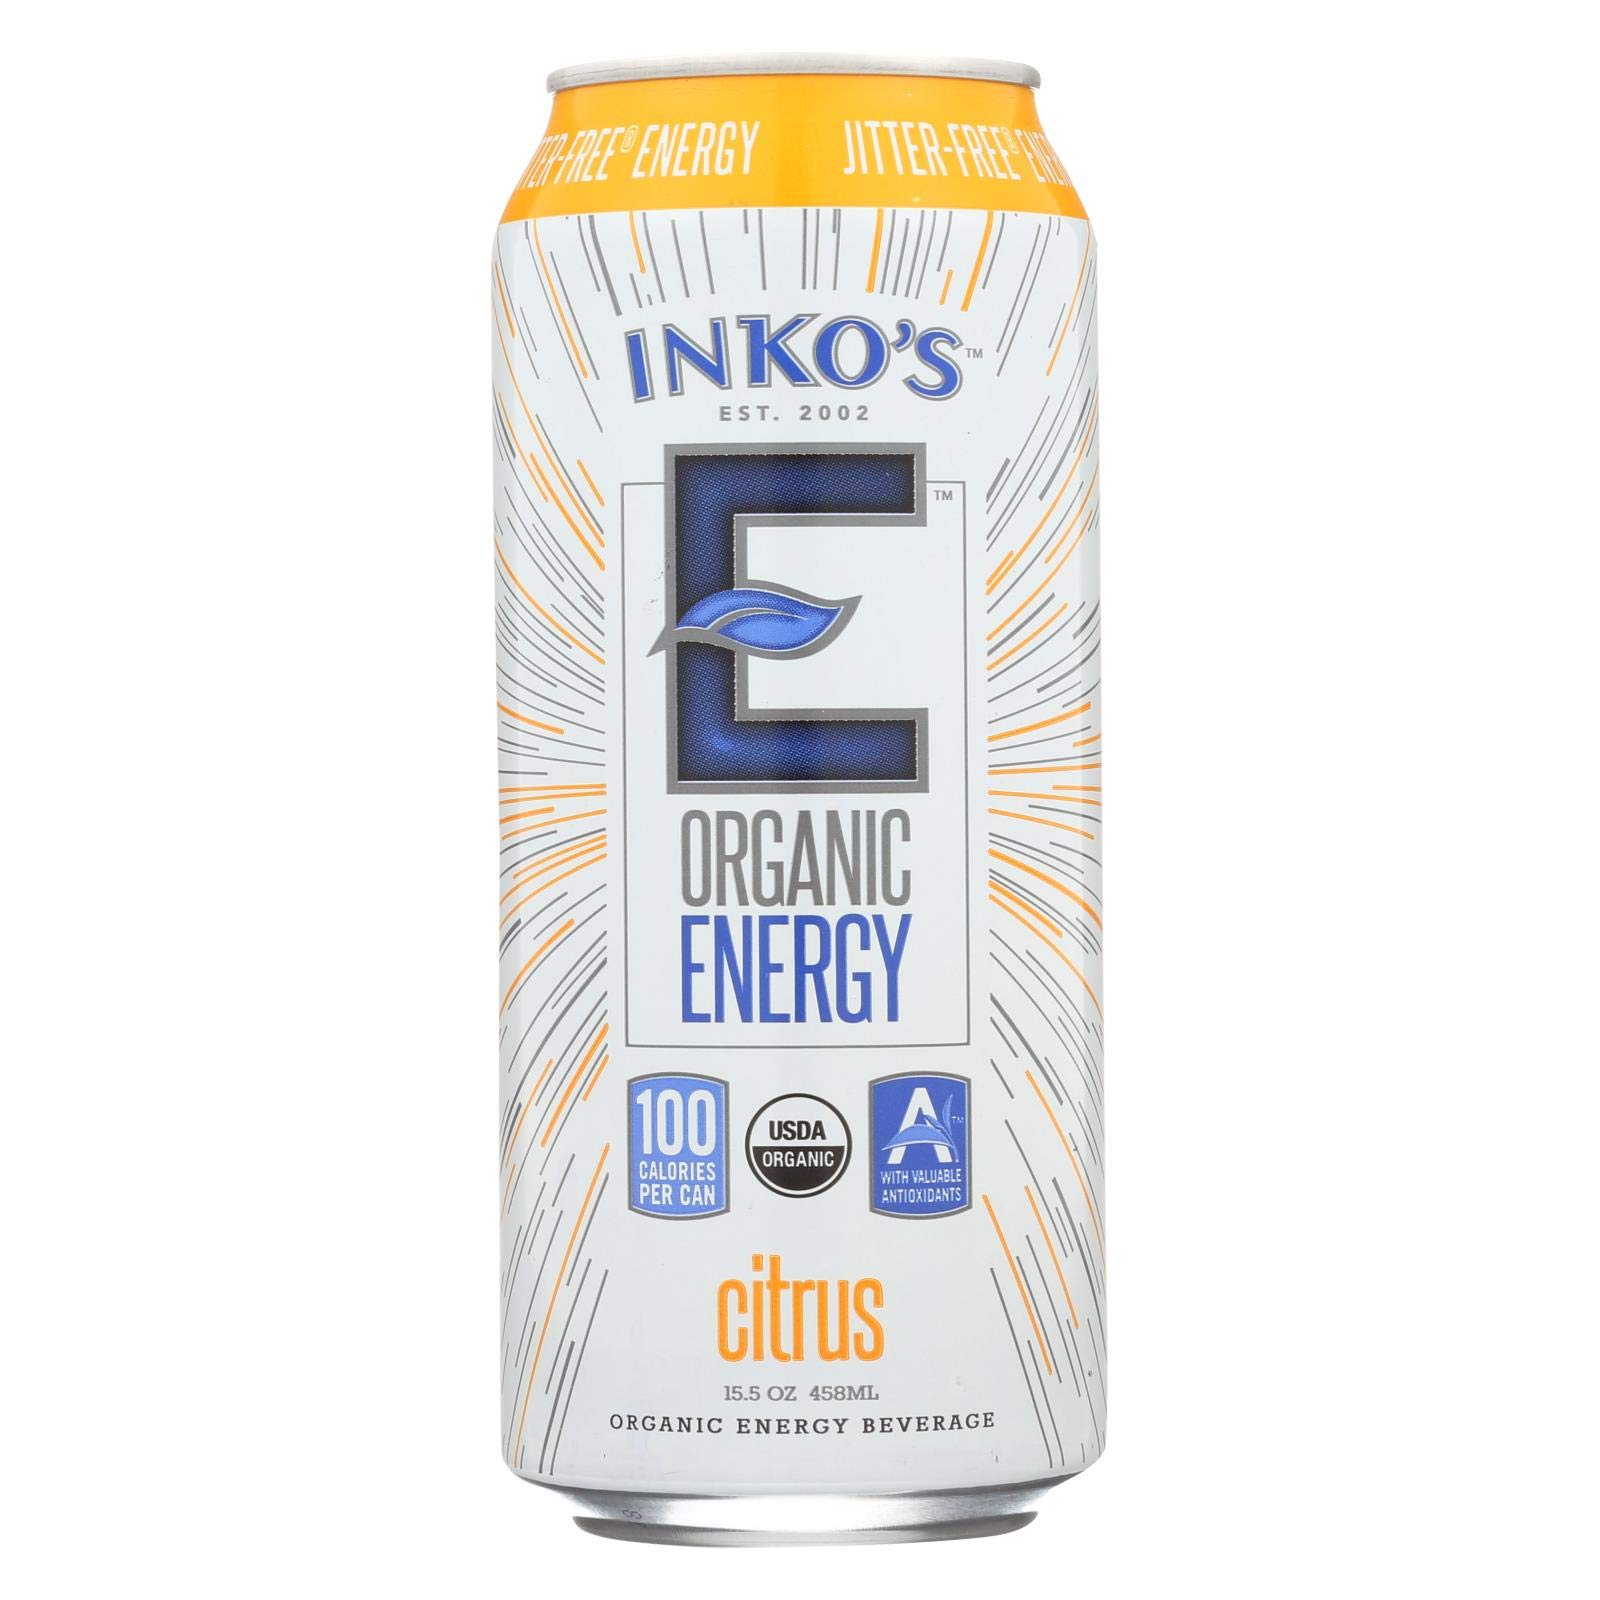 Inko's - Organic Energy Beverage Citrus - 15.5 oz.